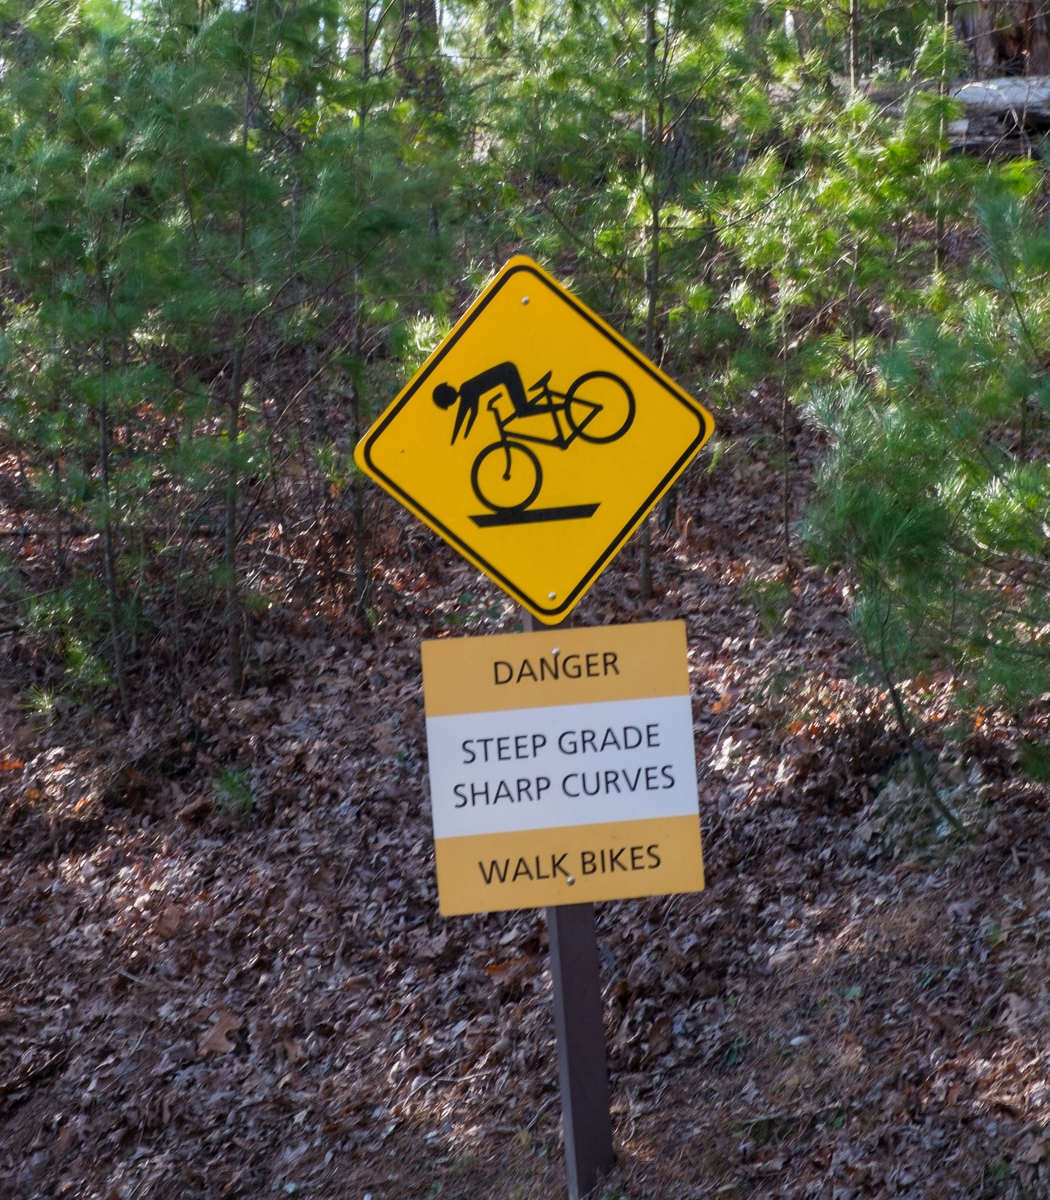 Downward slope for bikers at Cades Coves in the Great Smoky Mountains.